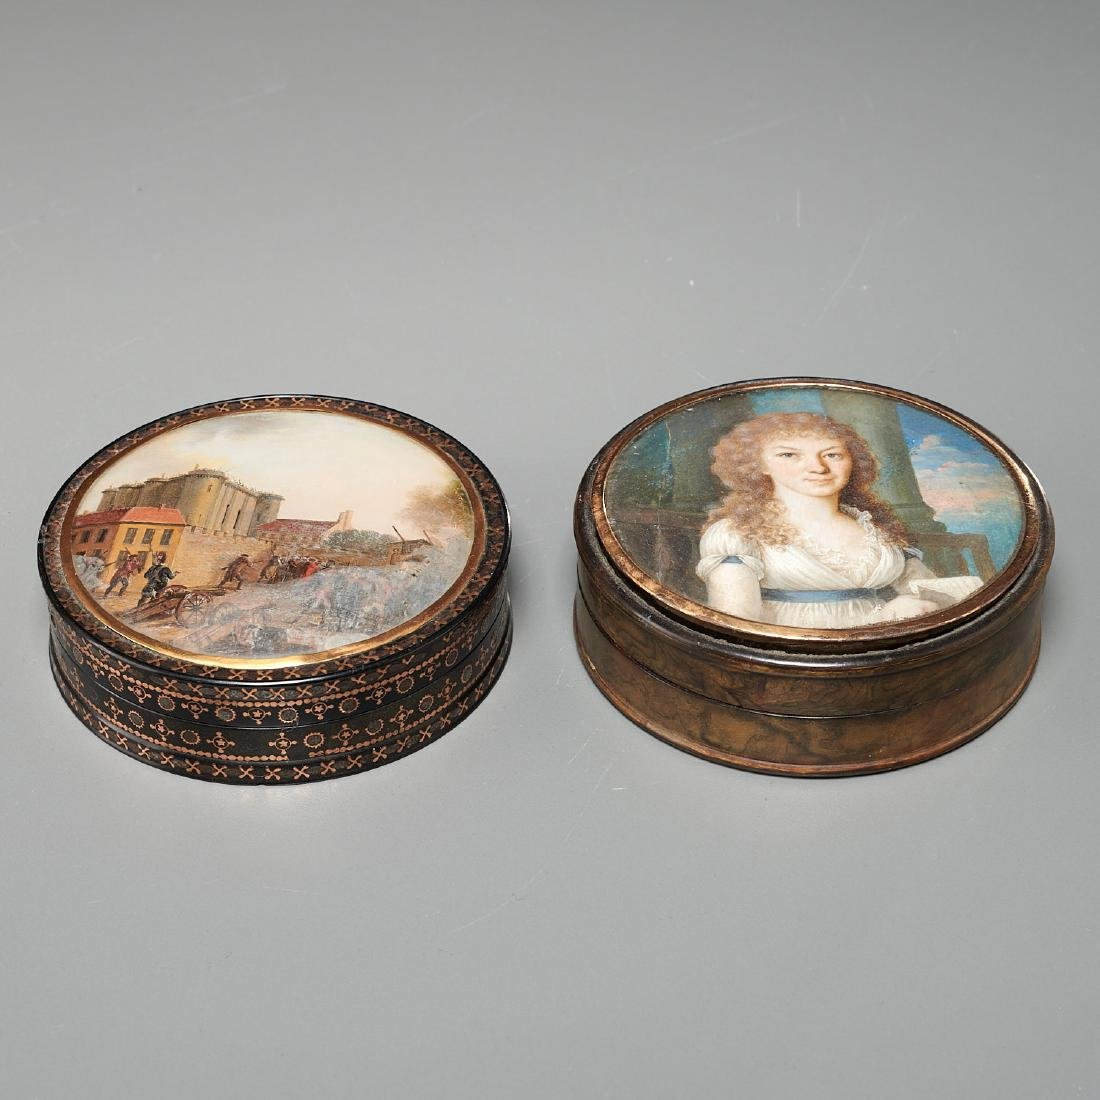 (2) French gold-mounted portrait miniature boxes - 2